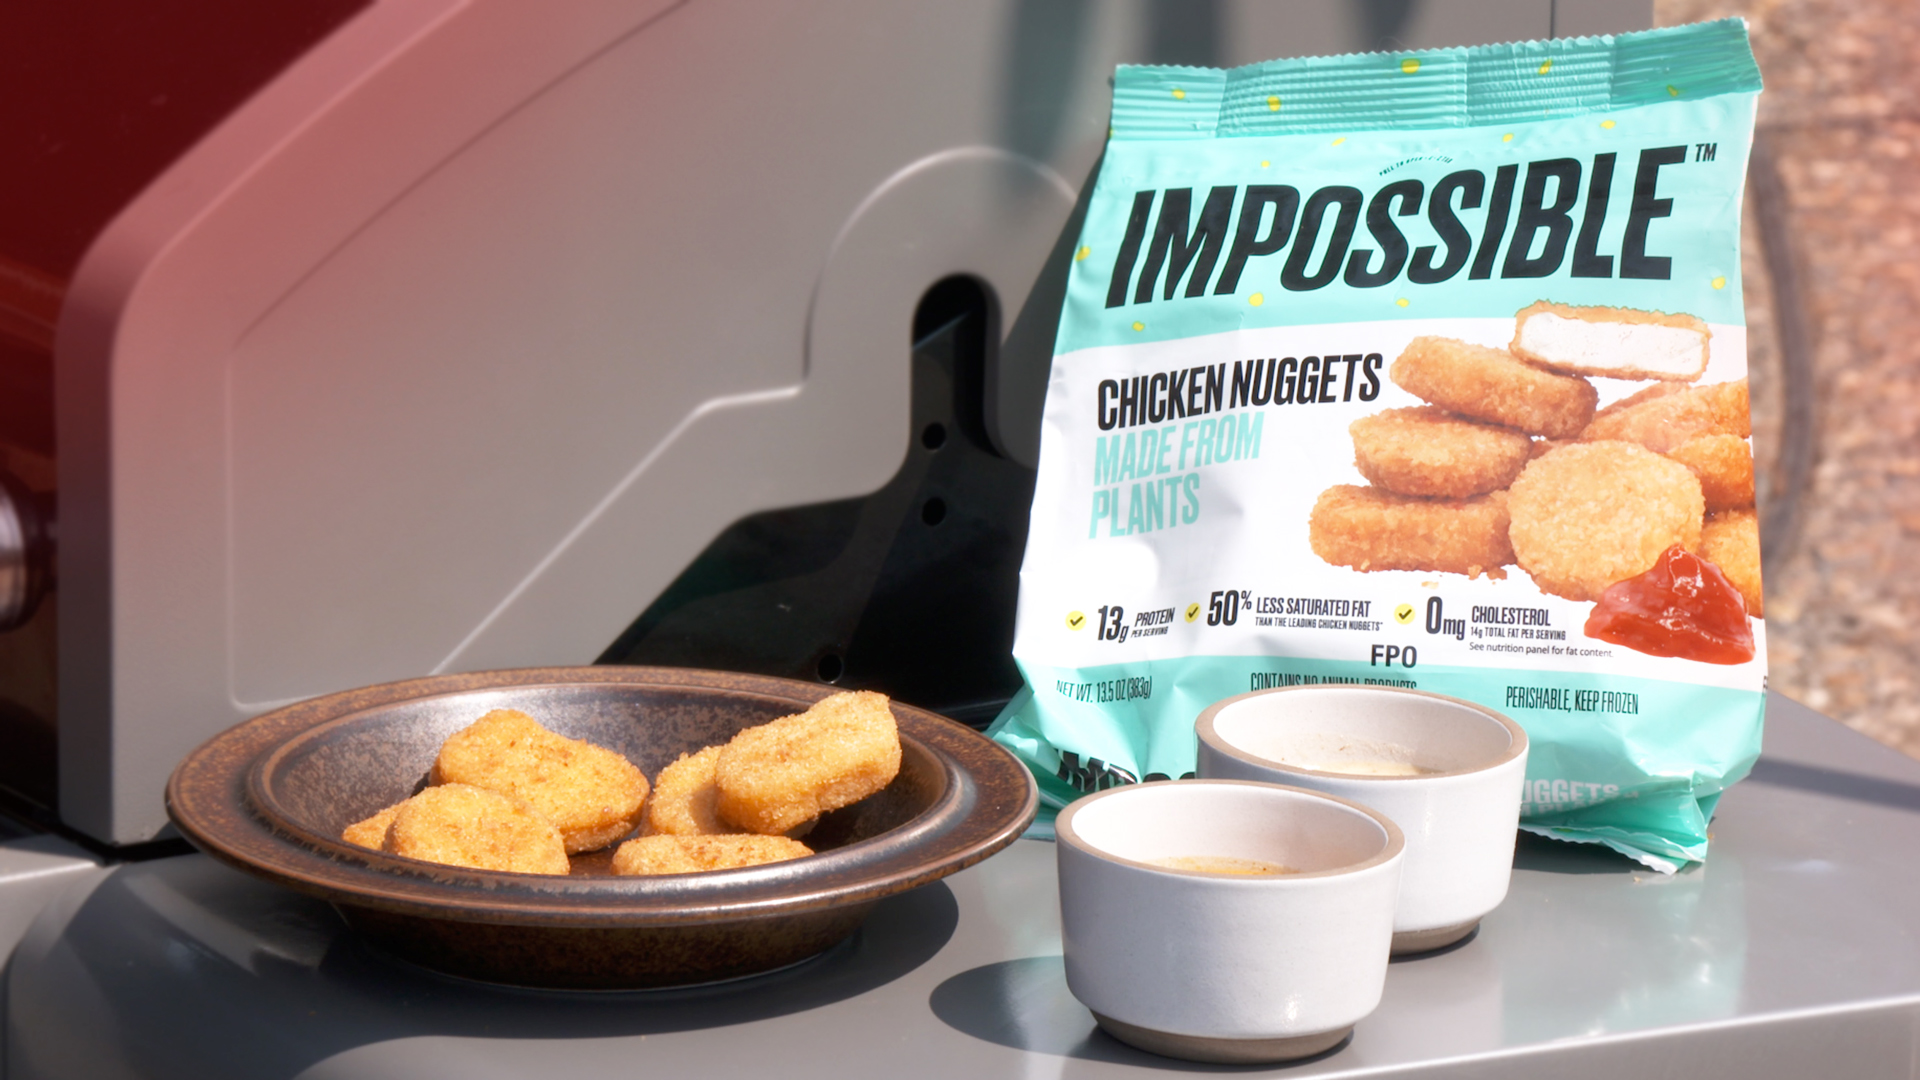 Video: Cooley hacks the cooking of Impossible chicken nuggets and they make him a believer